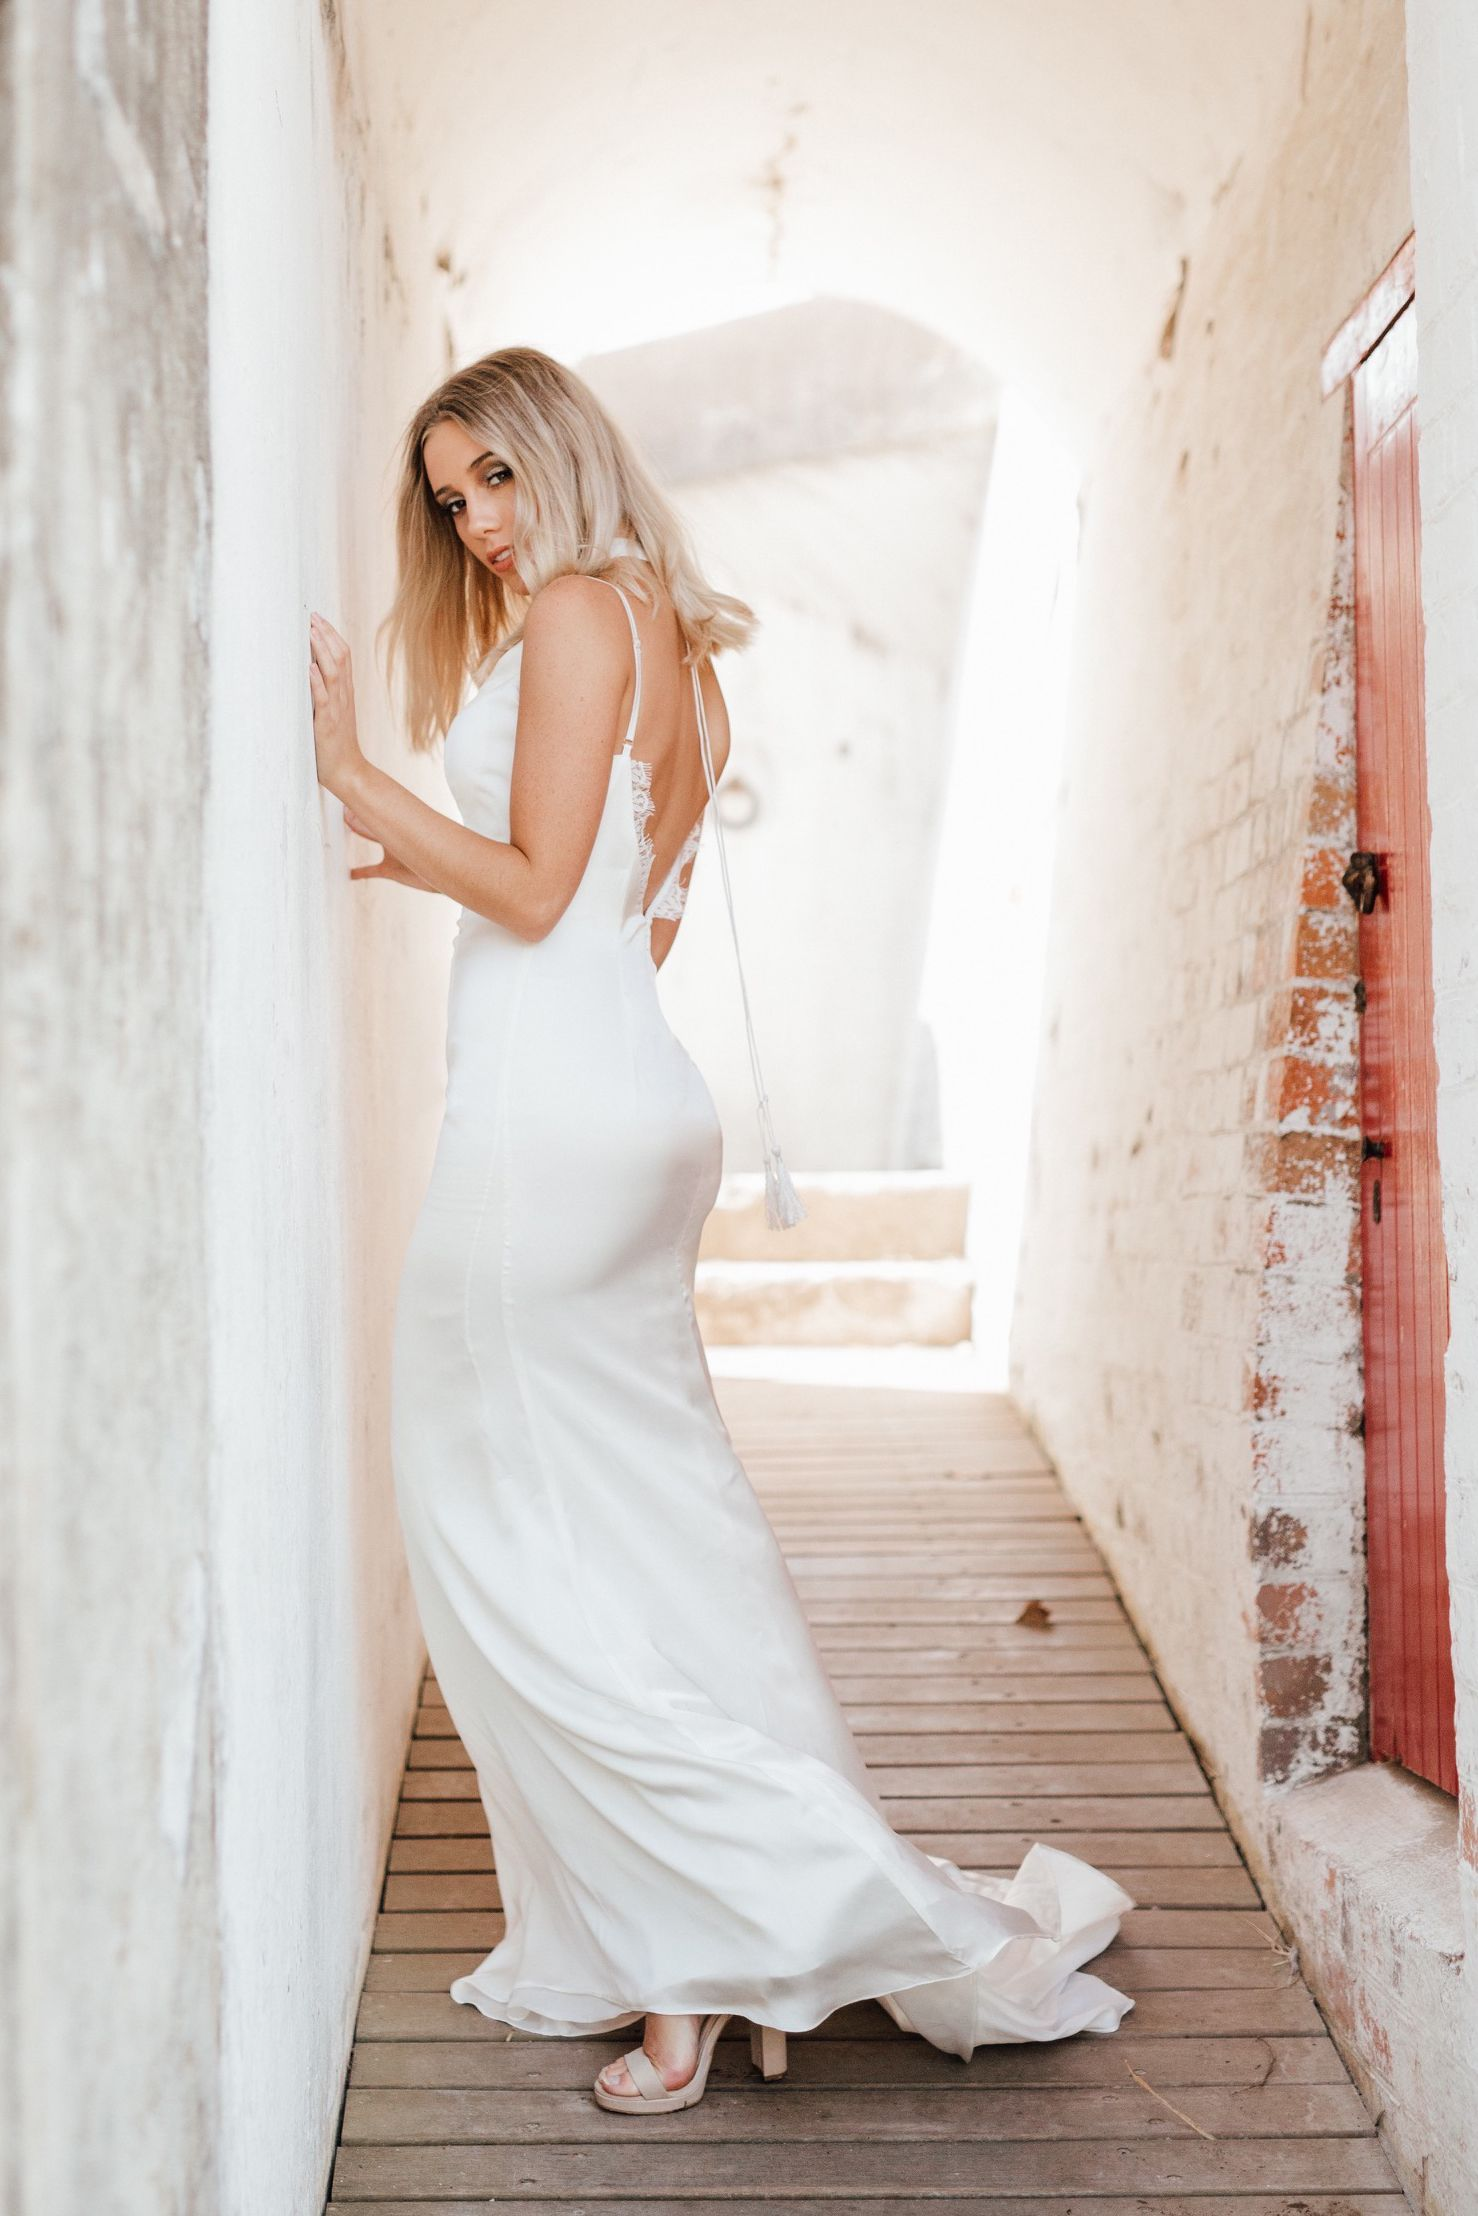 Goddess by nature dreamy designer wedding dresses for the modern